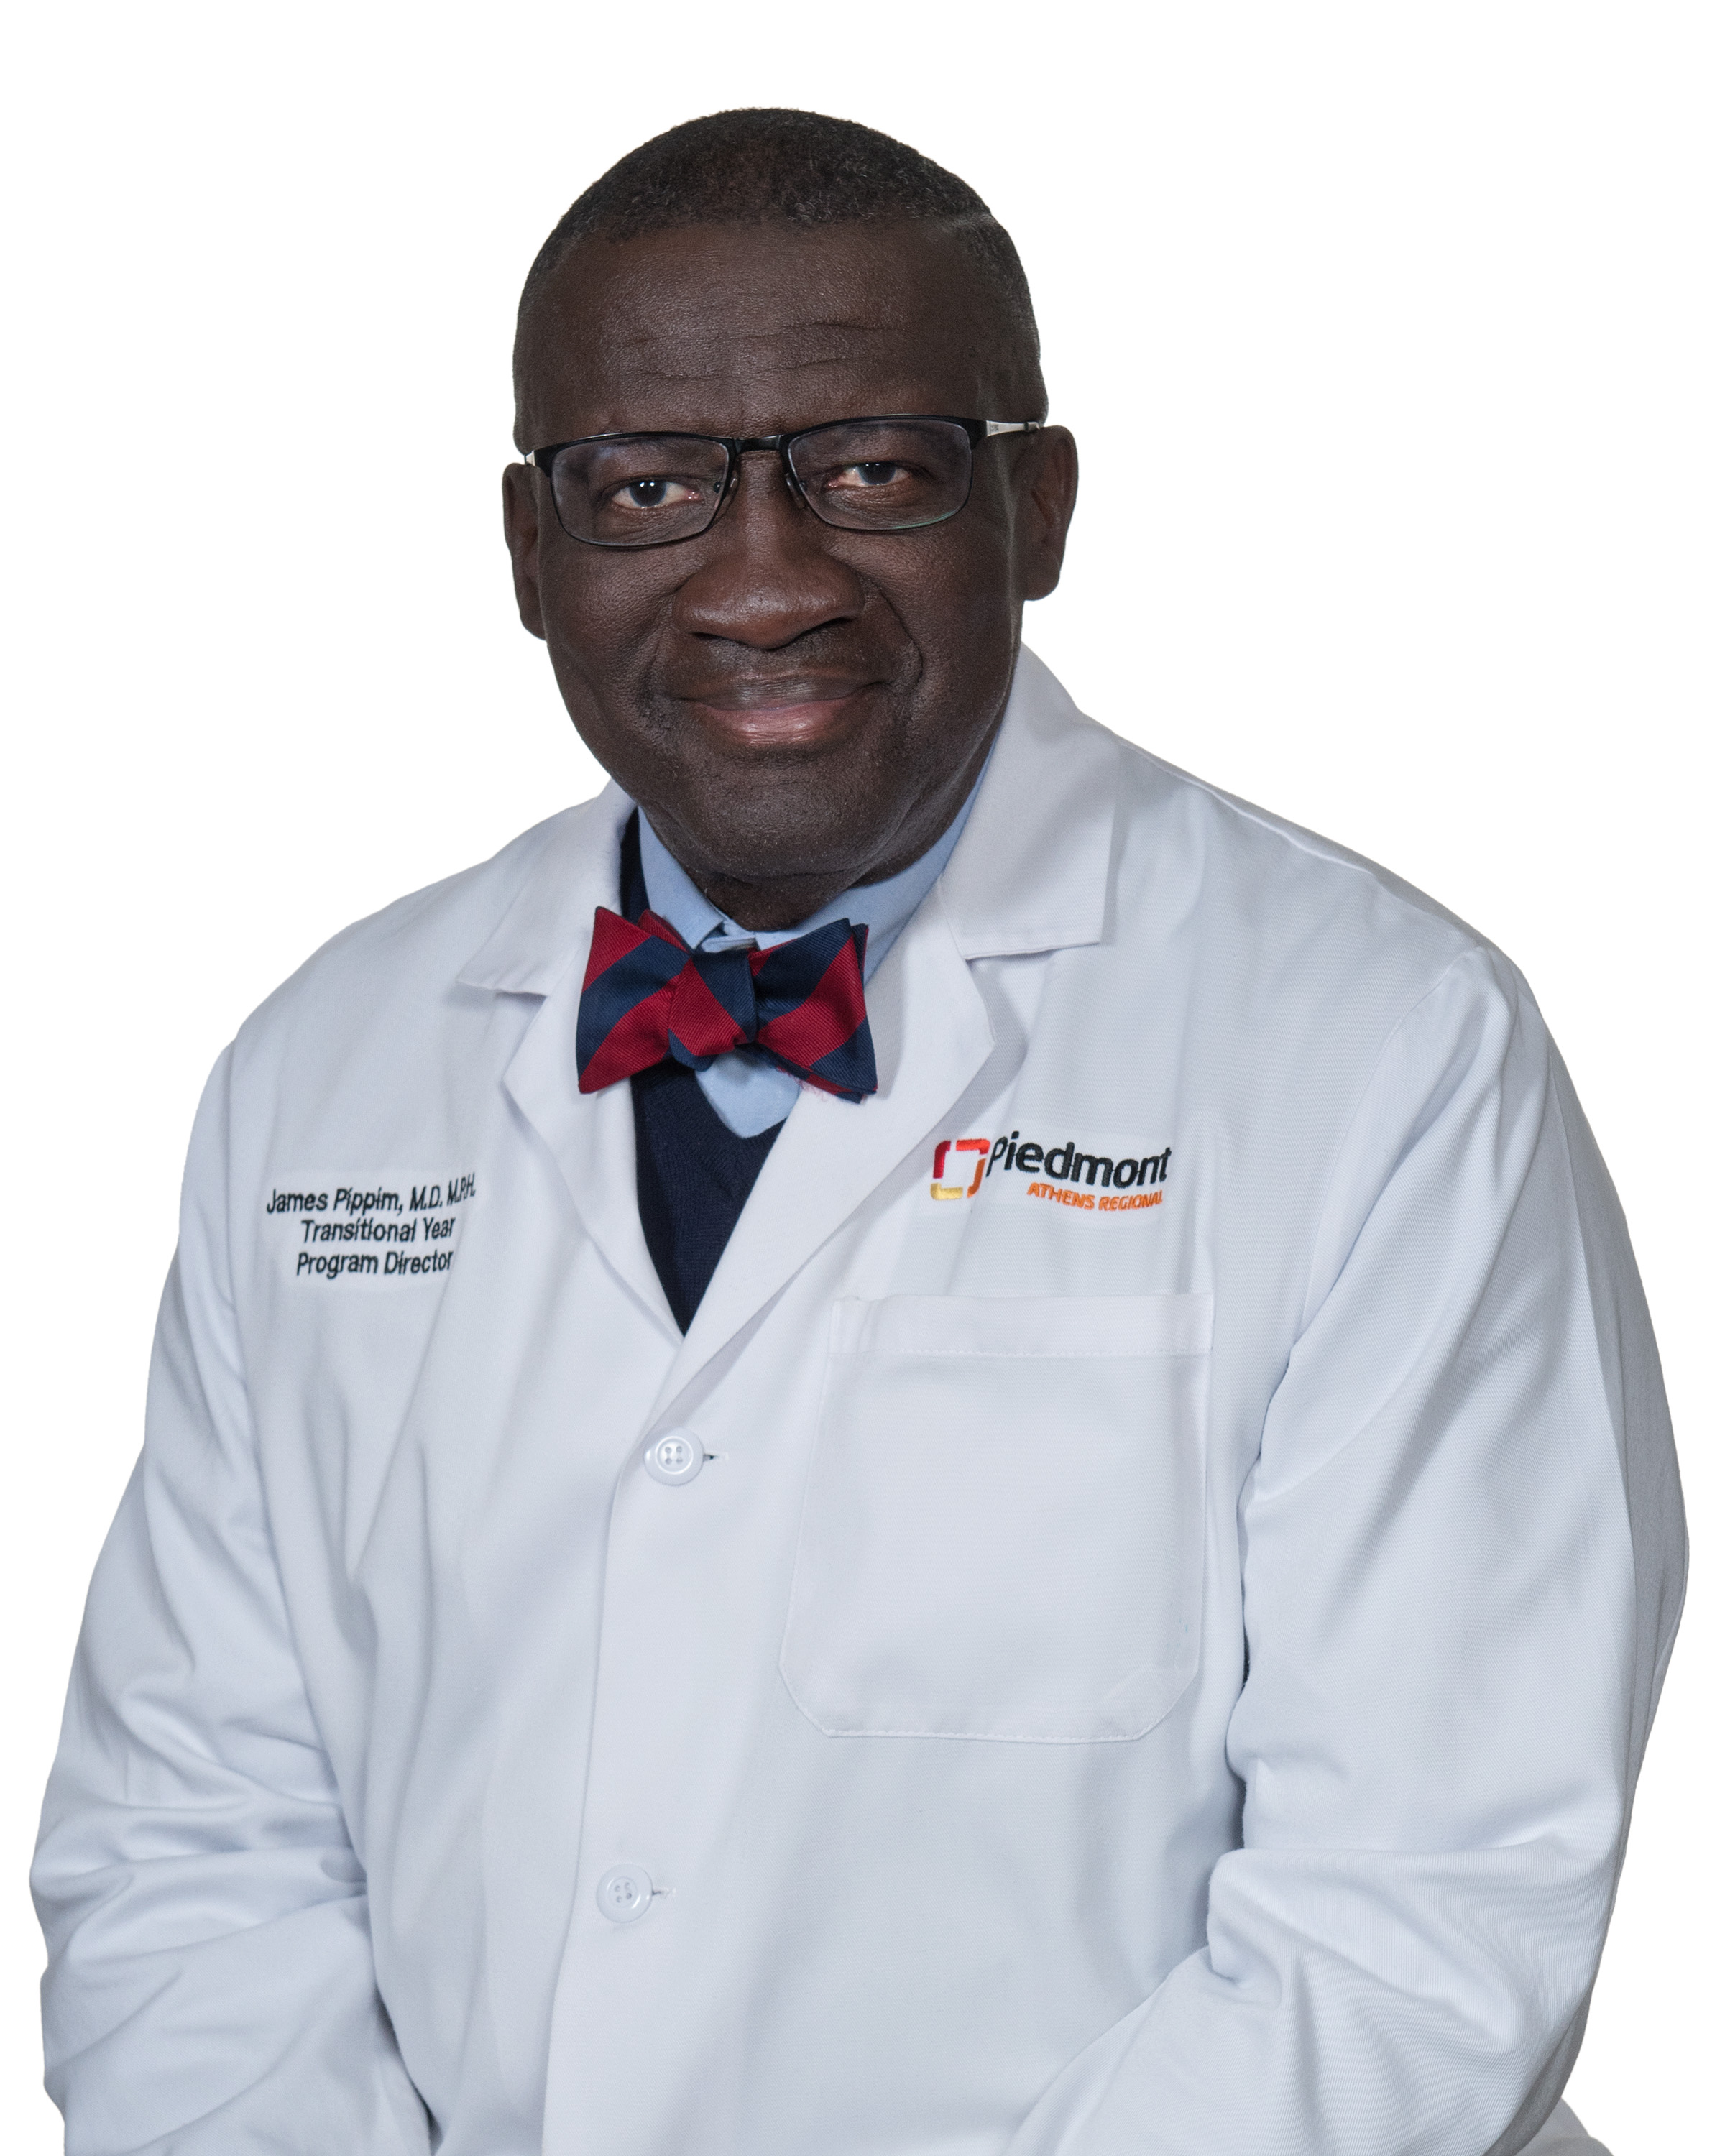 James Appiah-Pippim, MD, MPH, FCCP